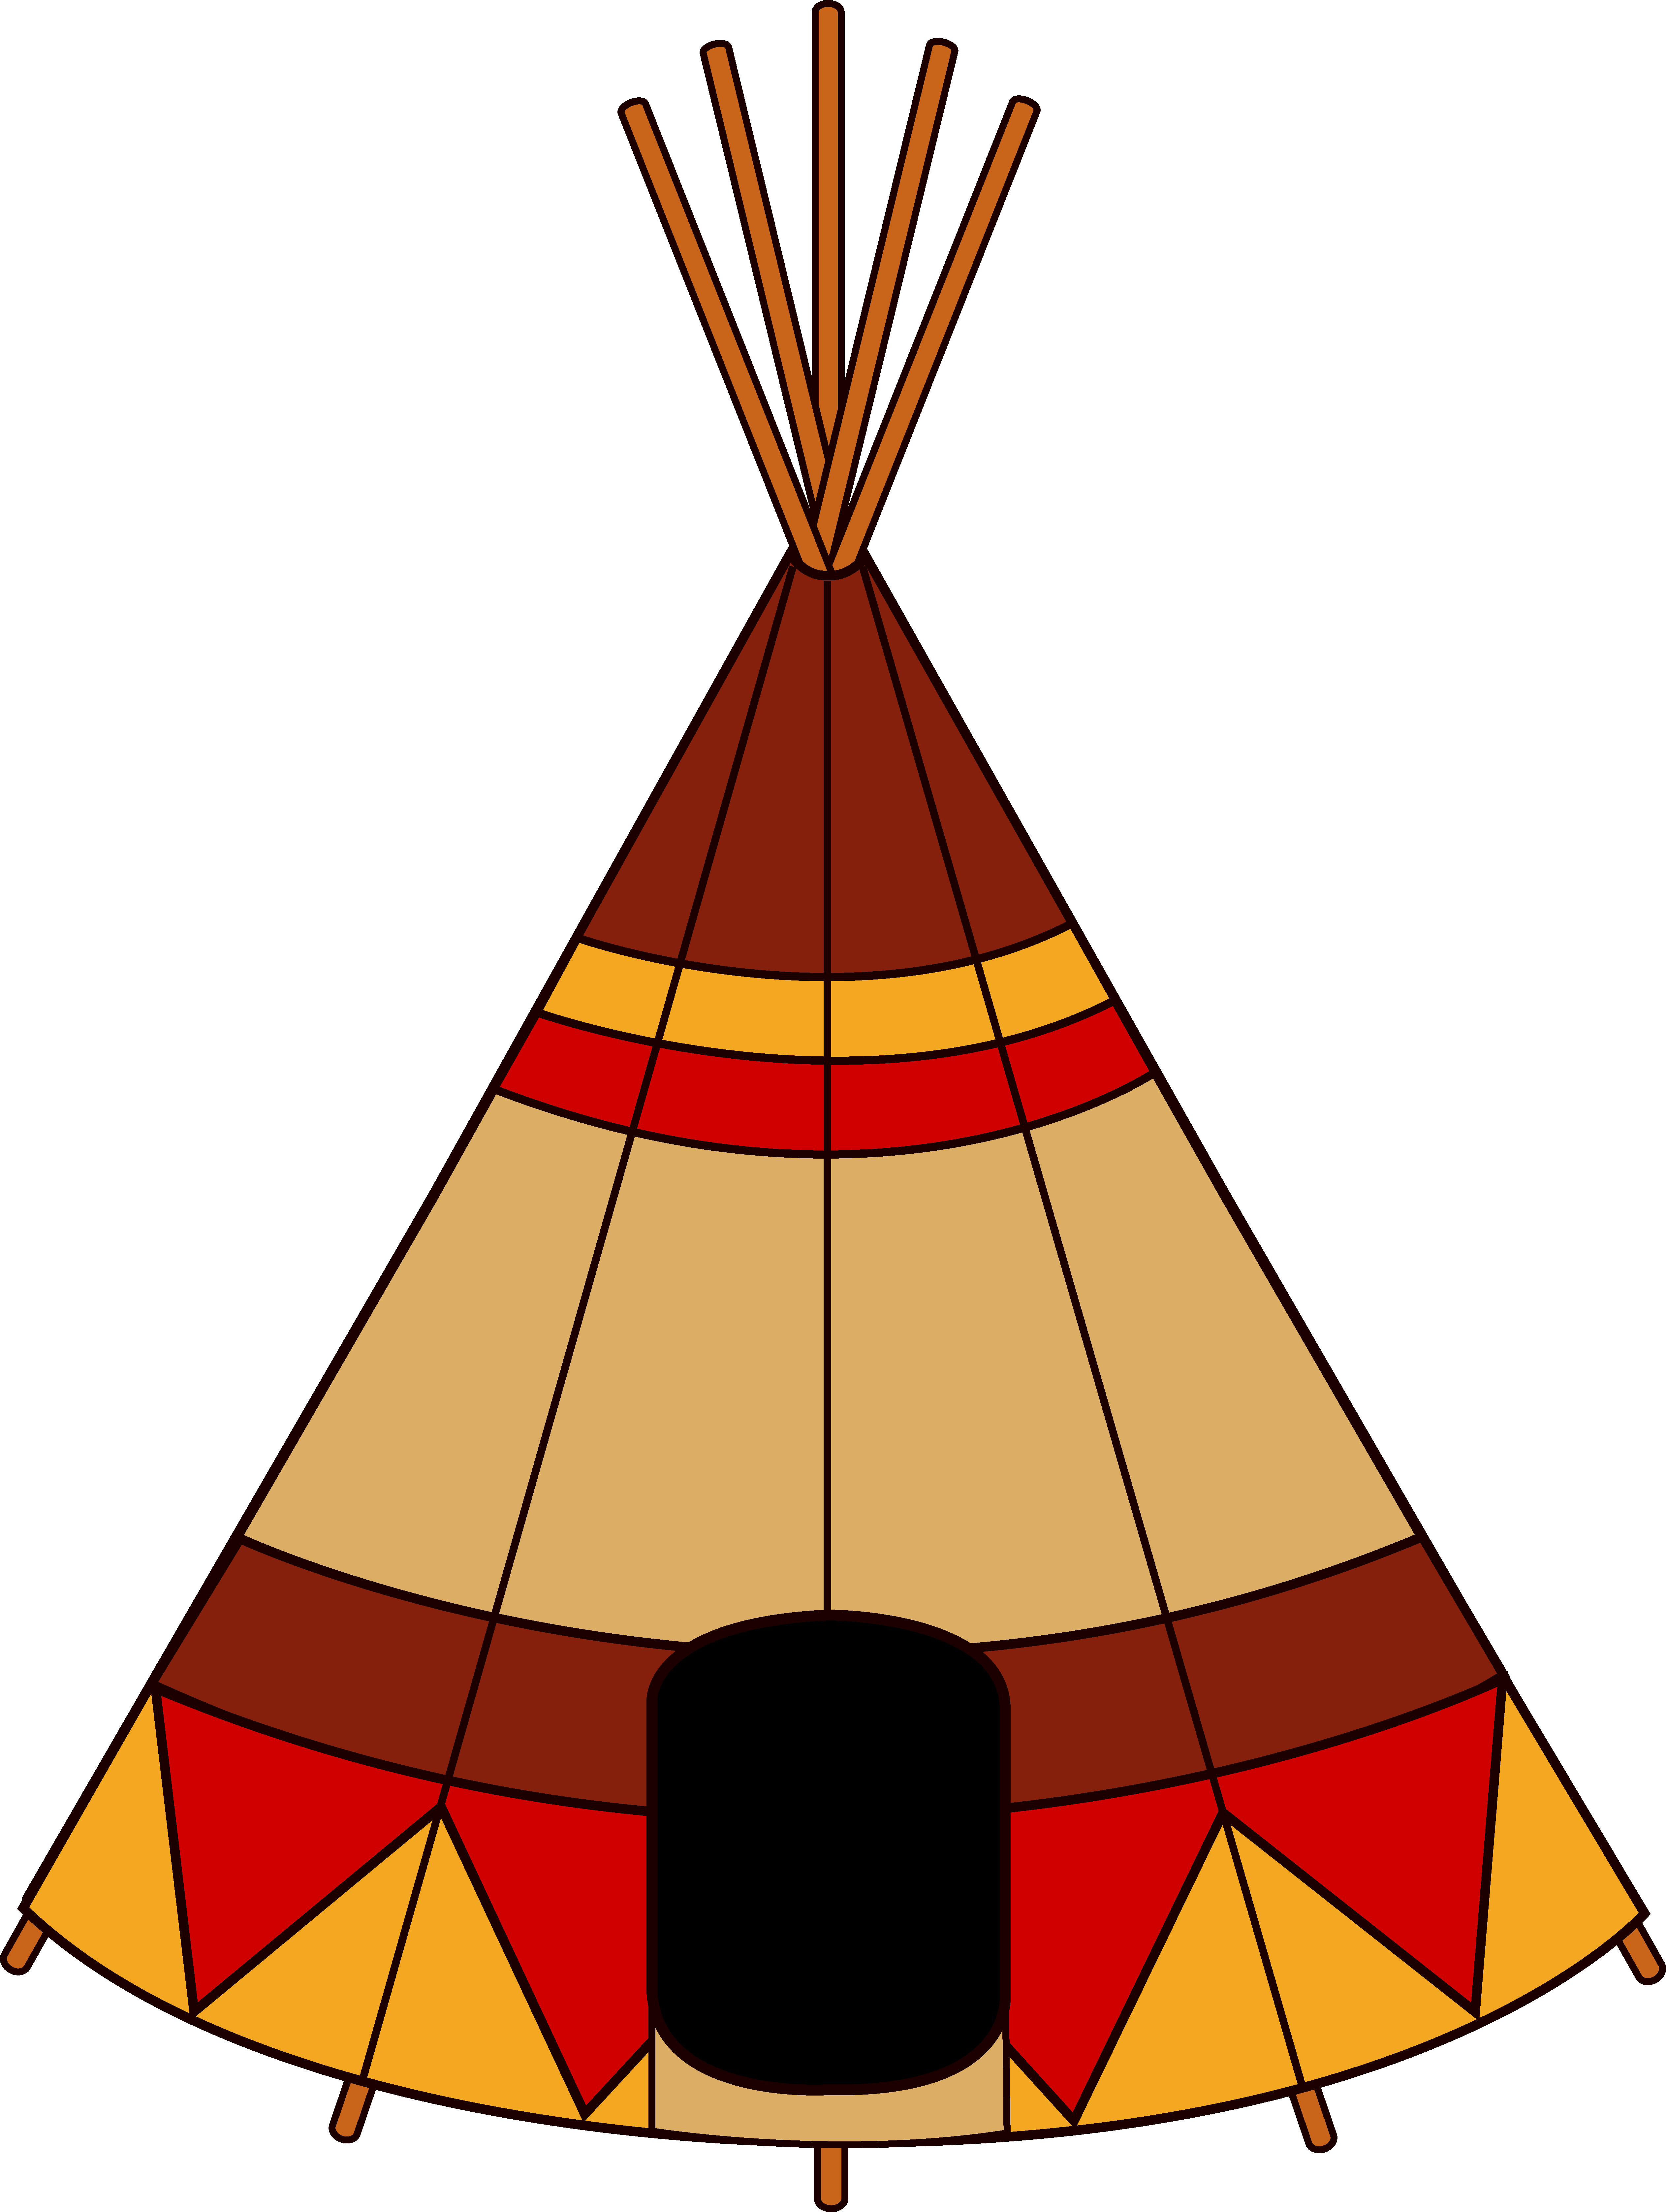 Tipi drawing tepee. Free native american clipart